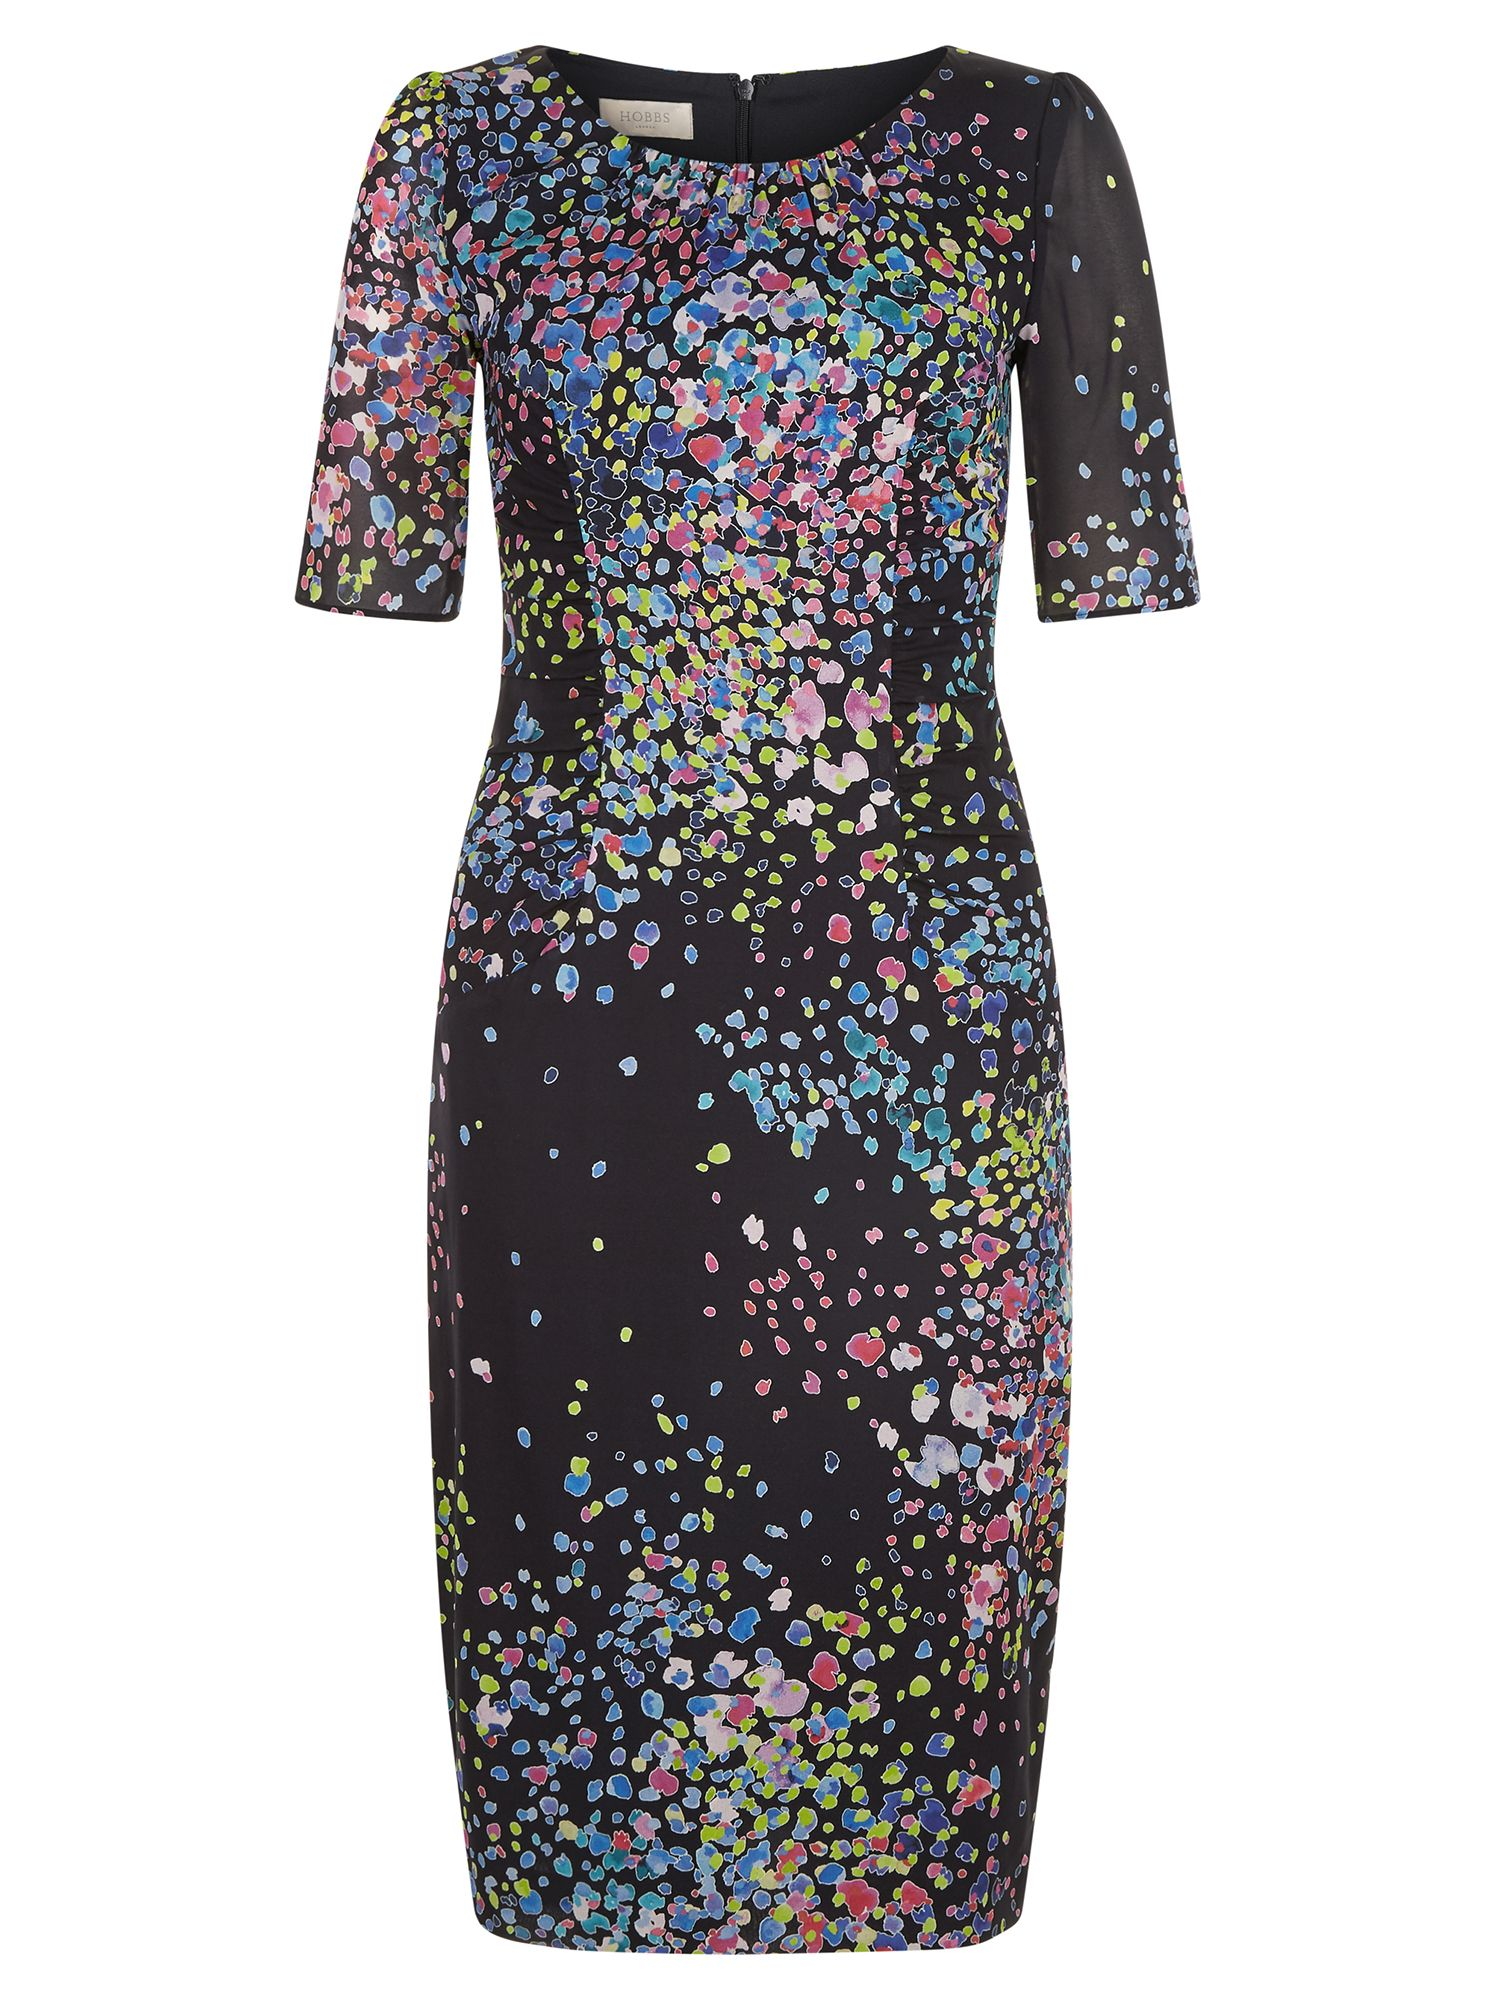 Hobbs Lauren Dress, Multi-Coloured